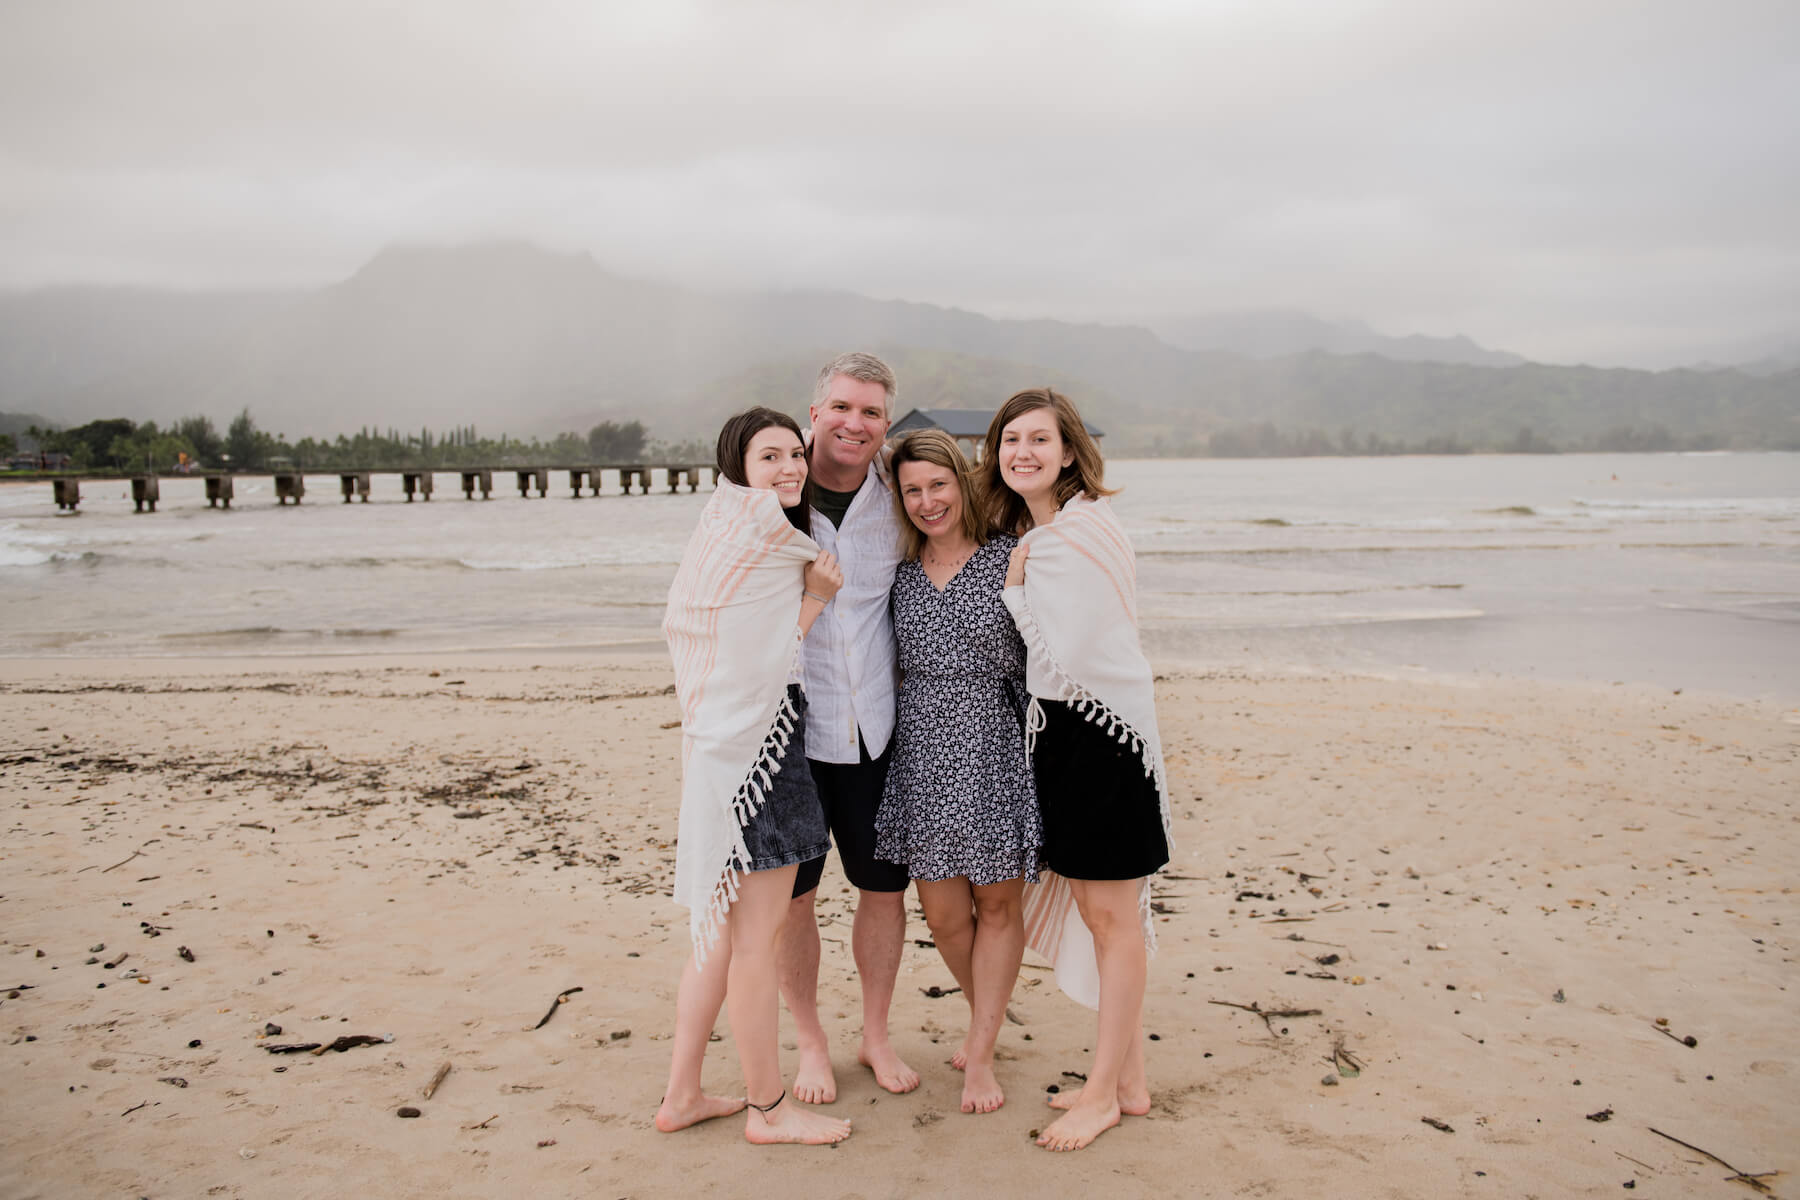 Family on a beach in Kauai Hawaii